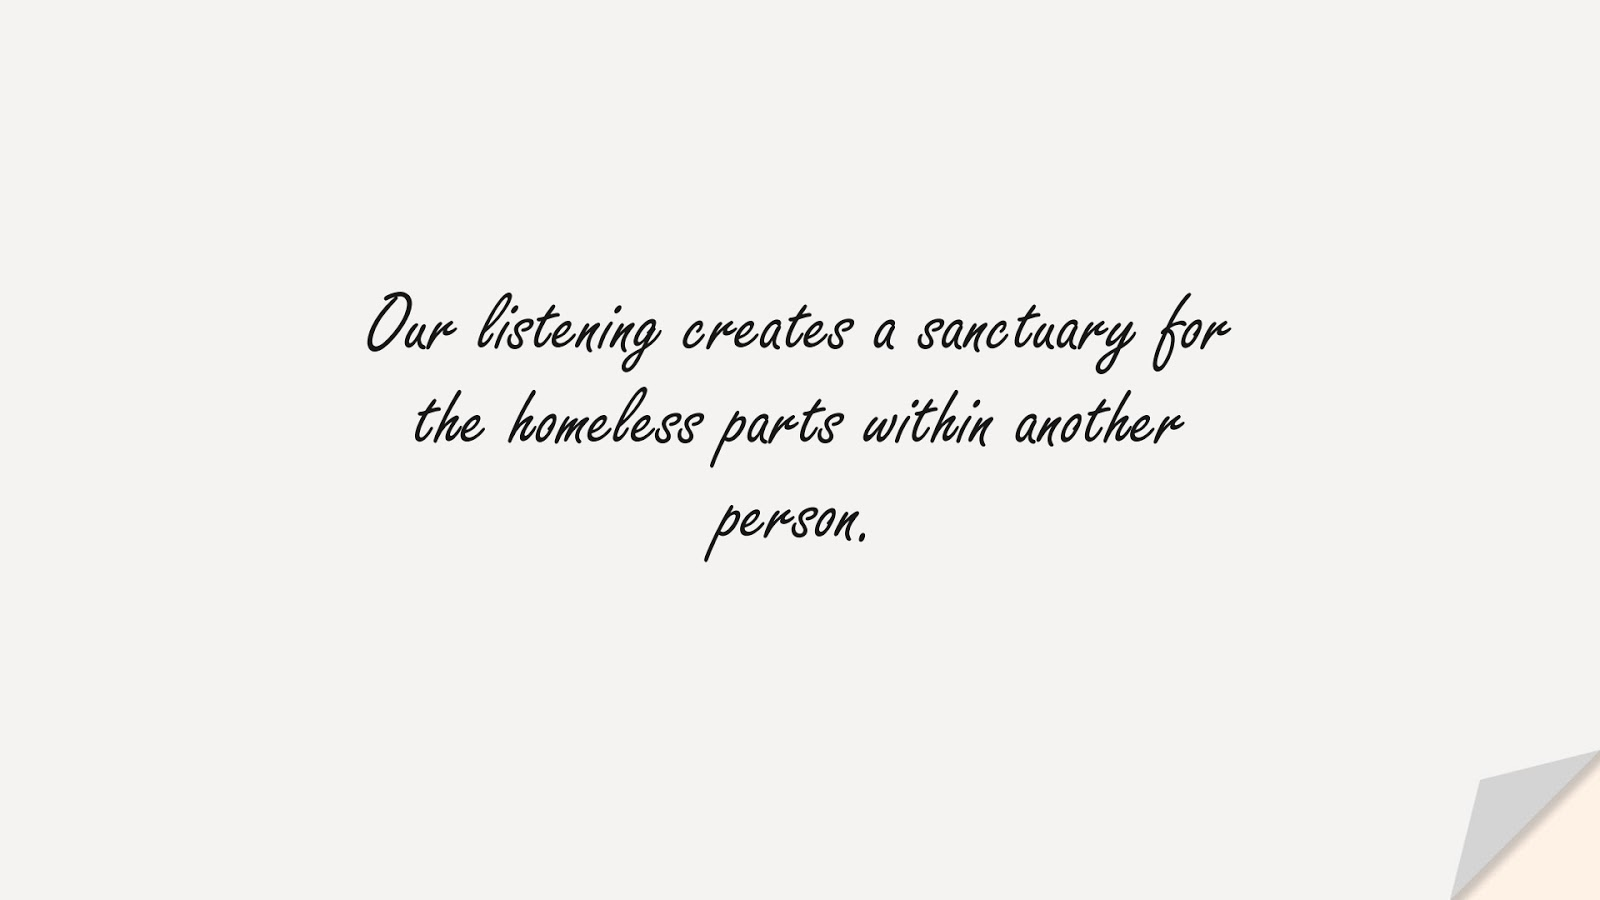 Our listening creates a sanctuary for the homeless parts within another person.FALSE